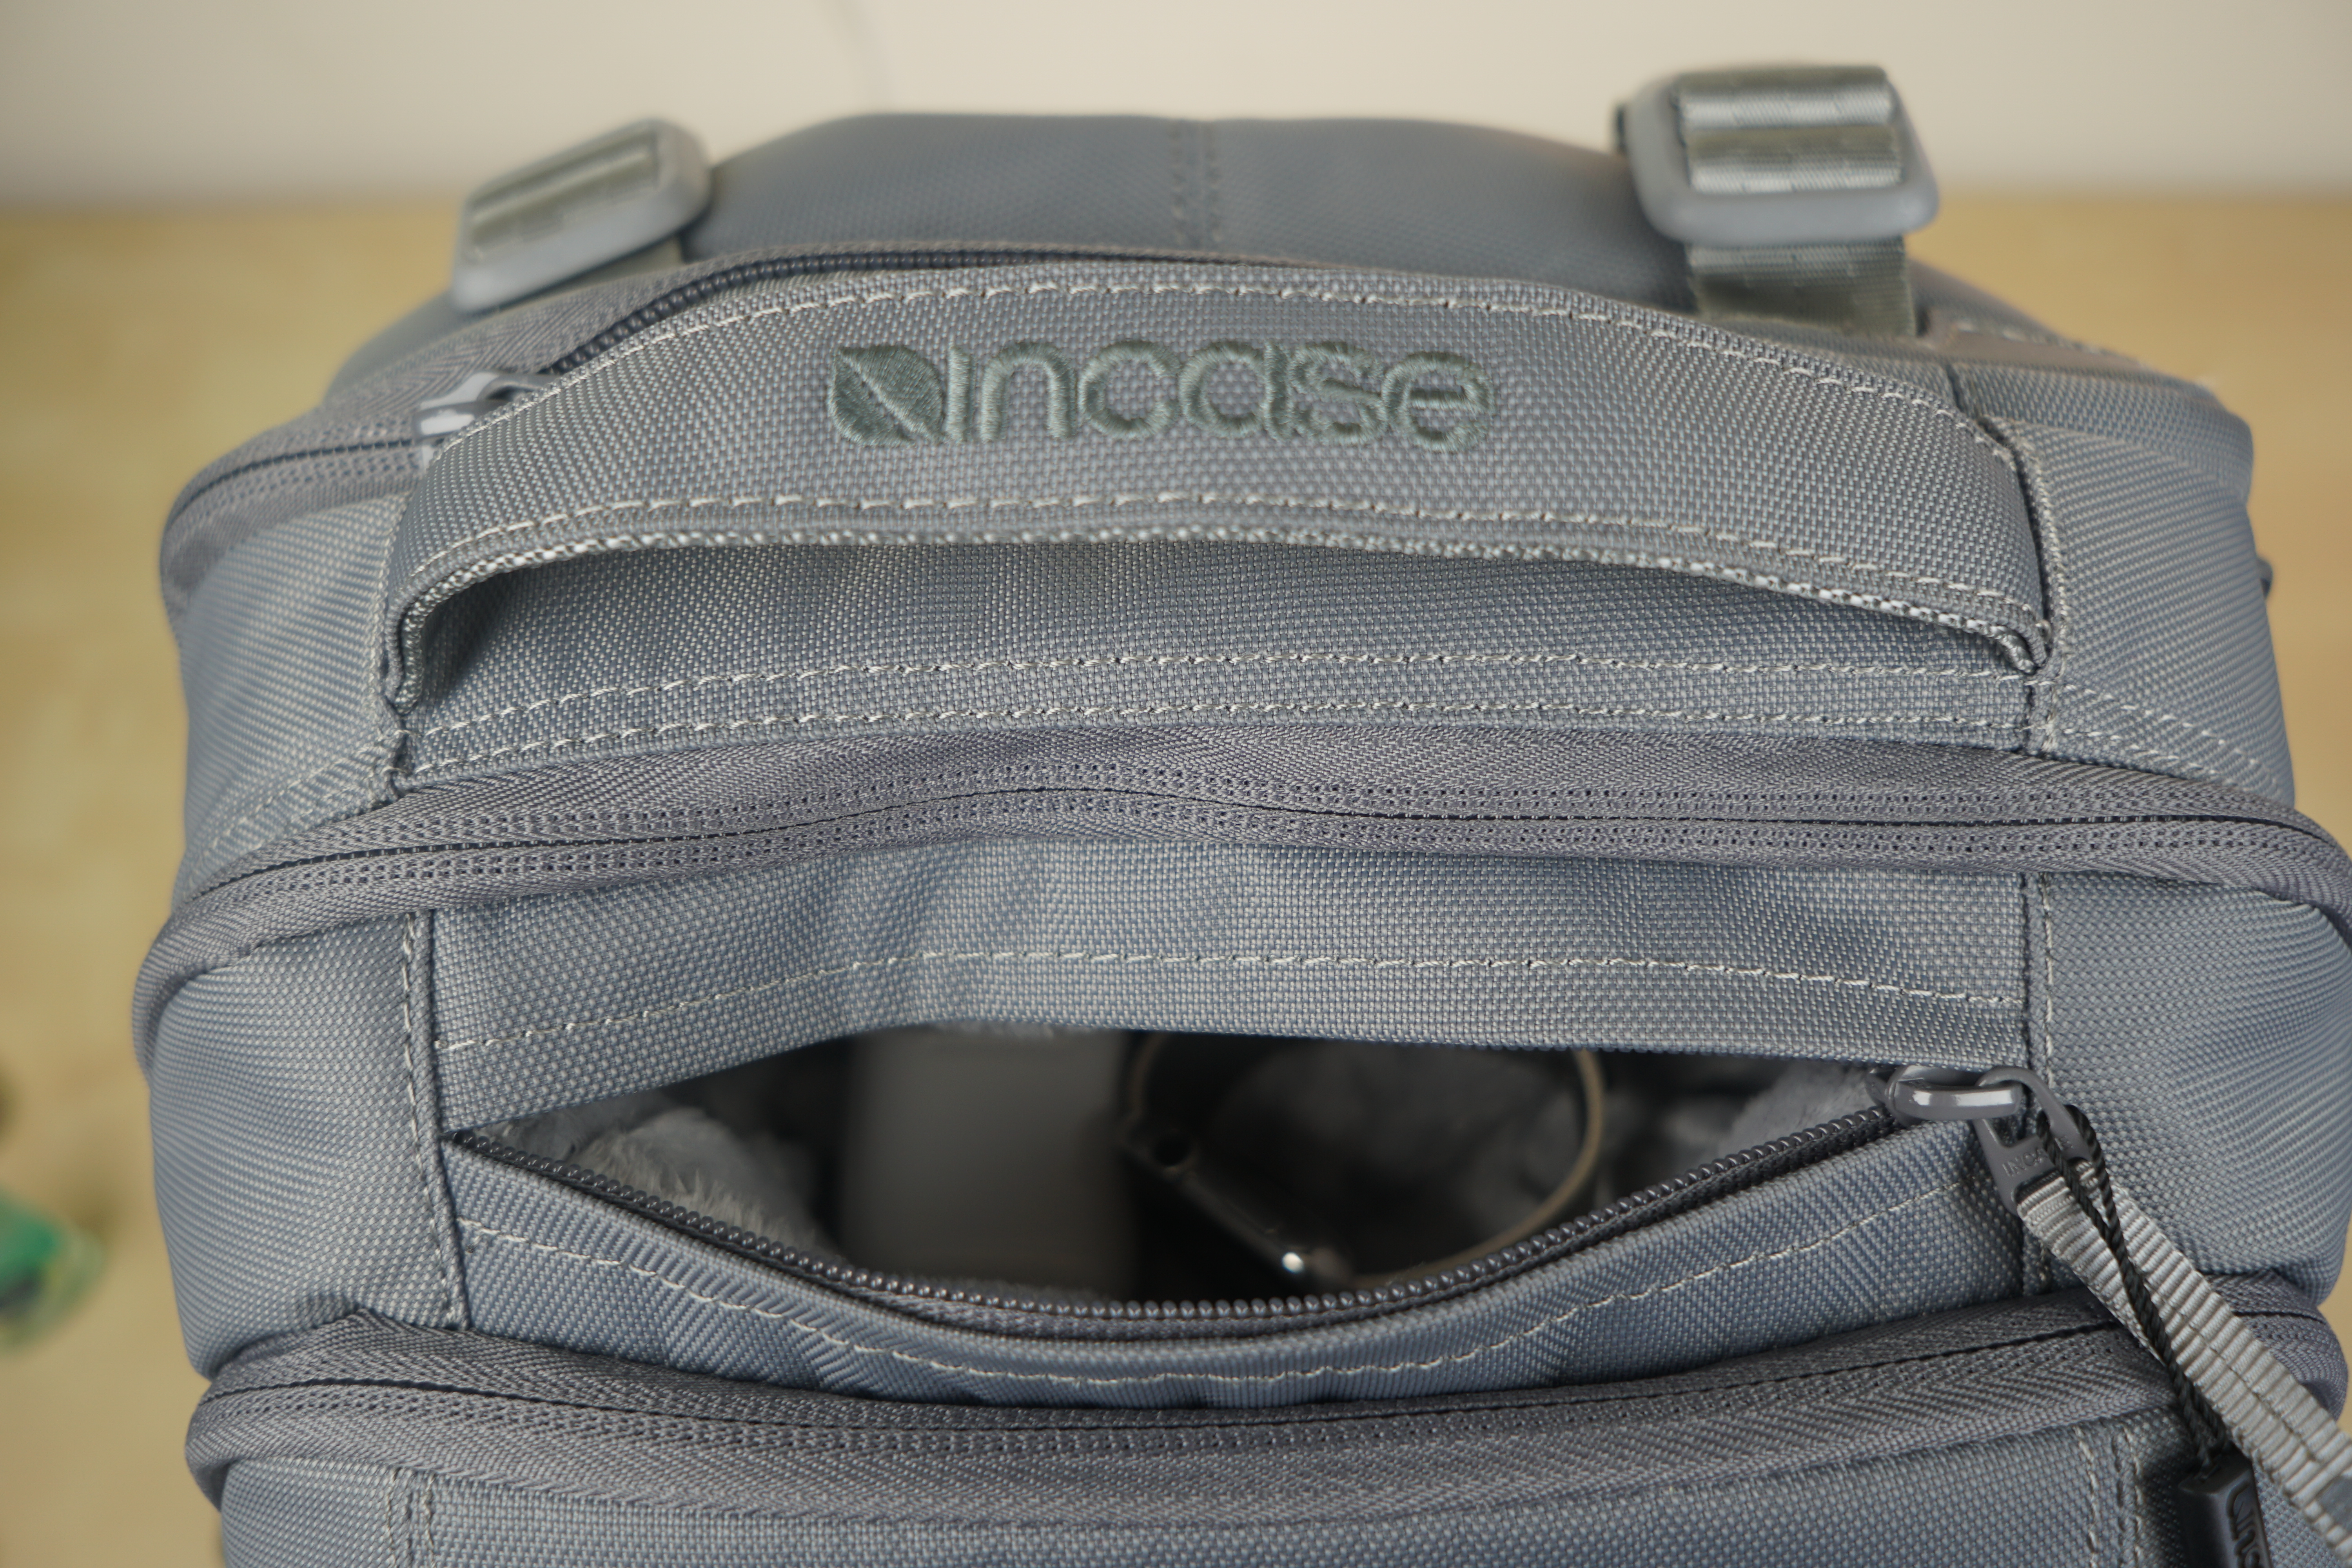 incase-icon-macbook-backpack-6